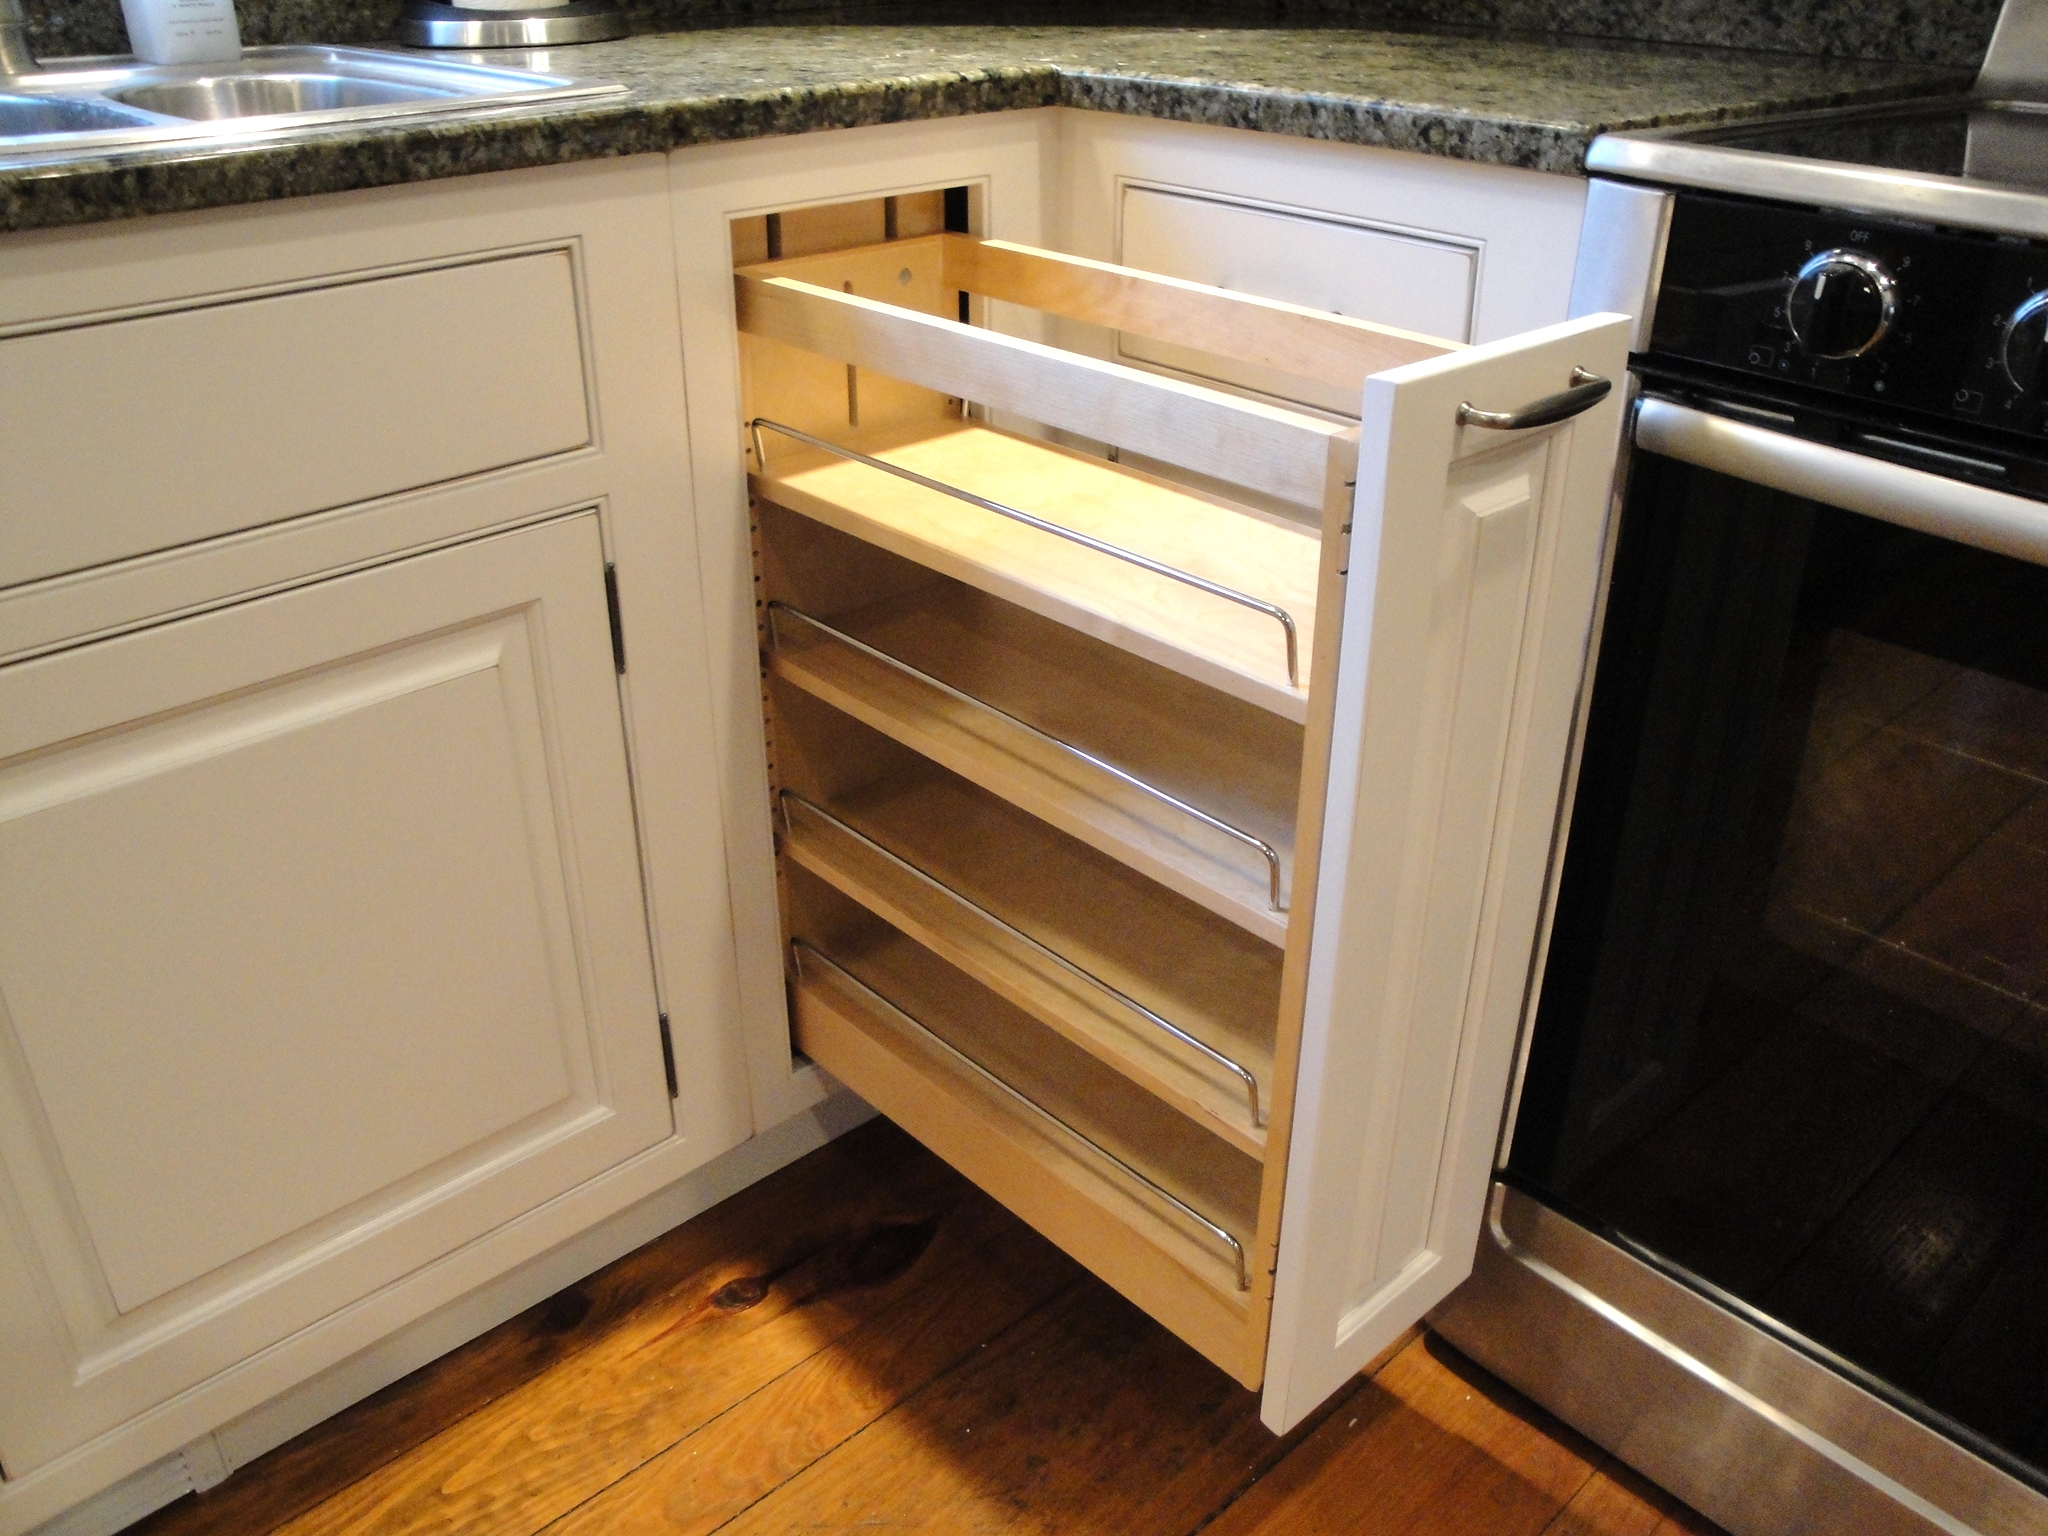 Kitchen cabinet base roll-out organizer